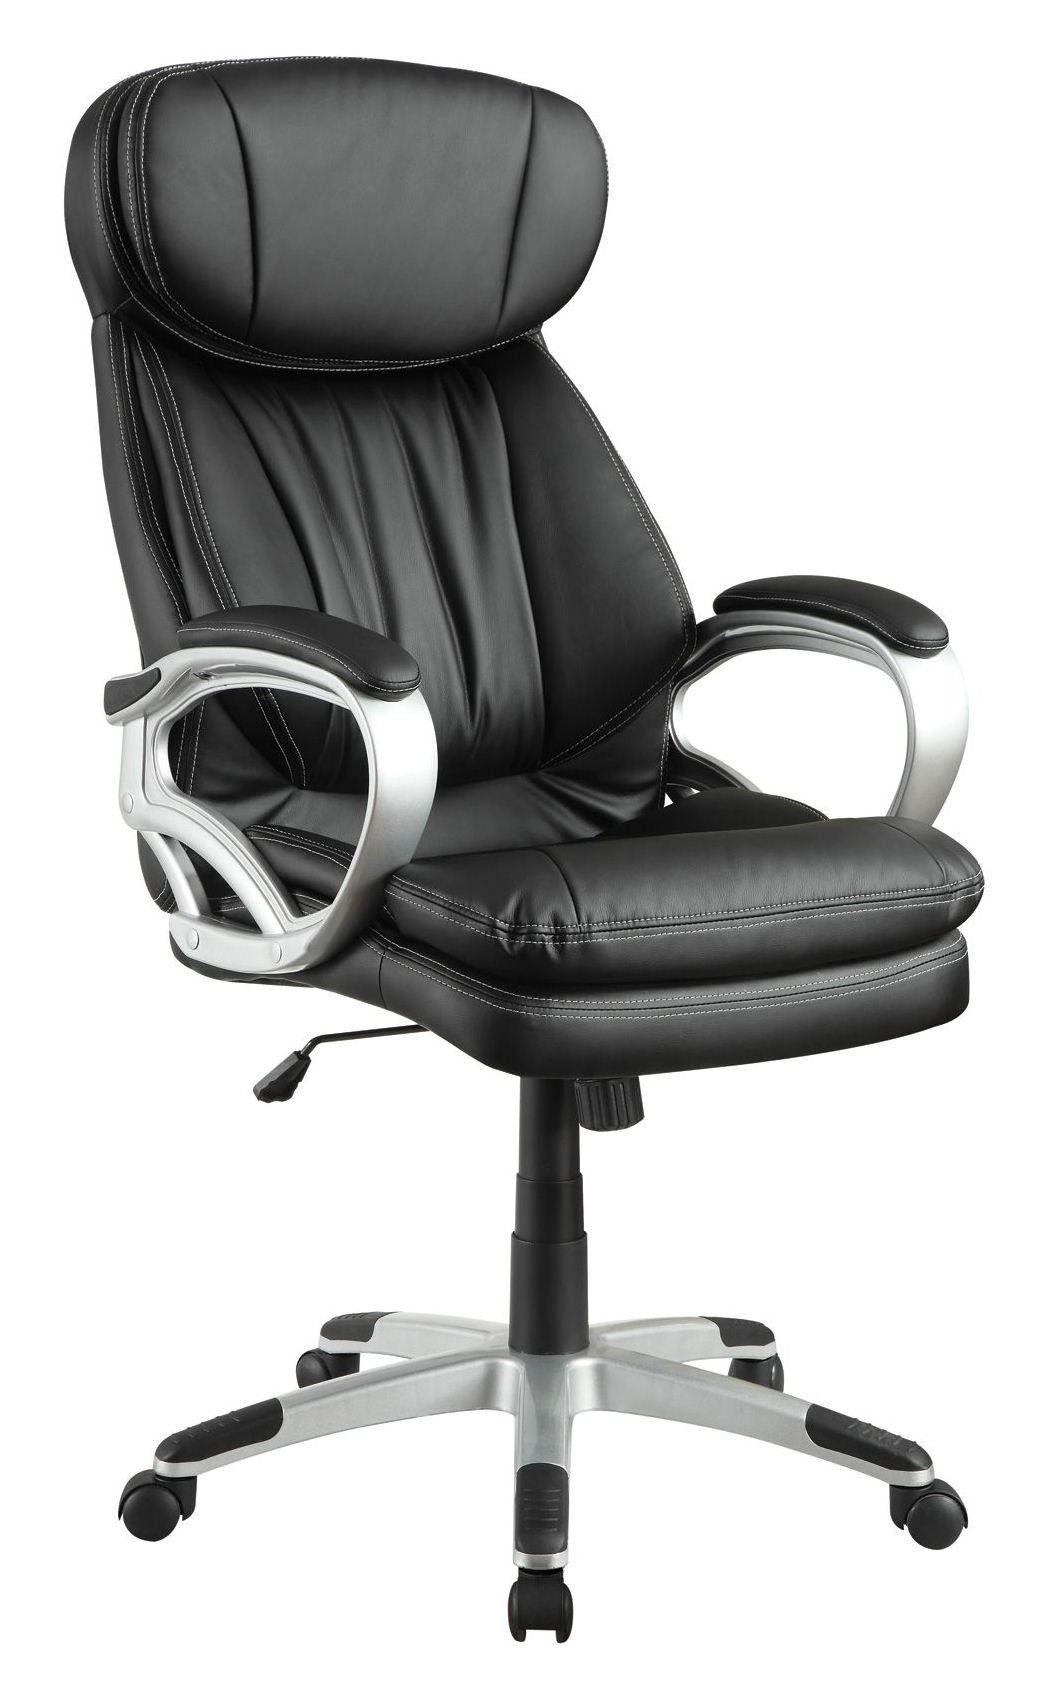 upholstered office chair from coaster 800165 coleman furniture